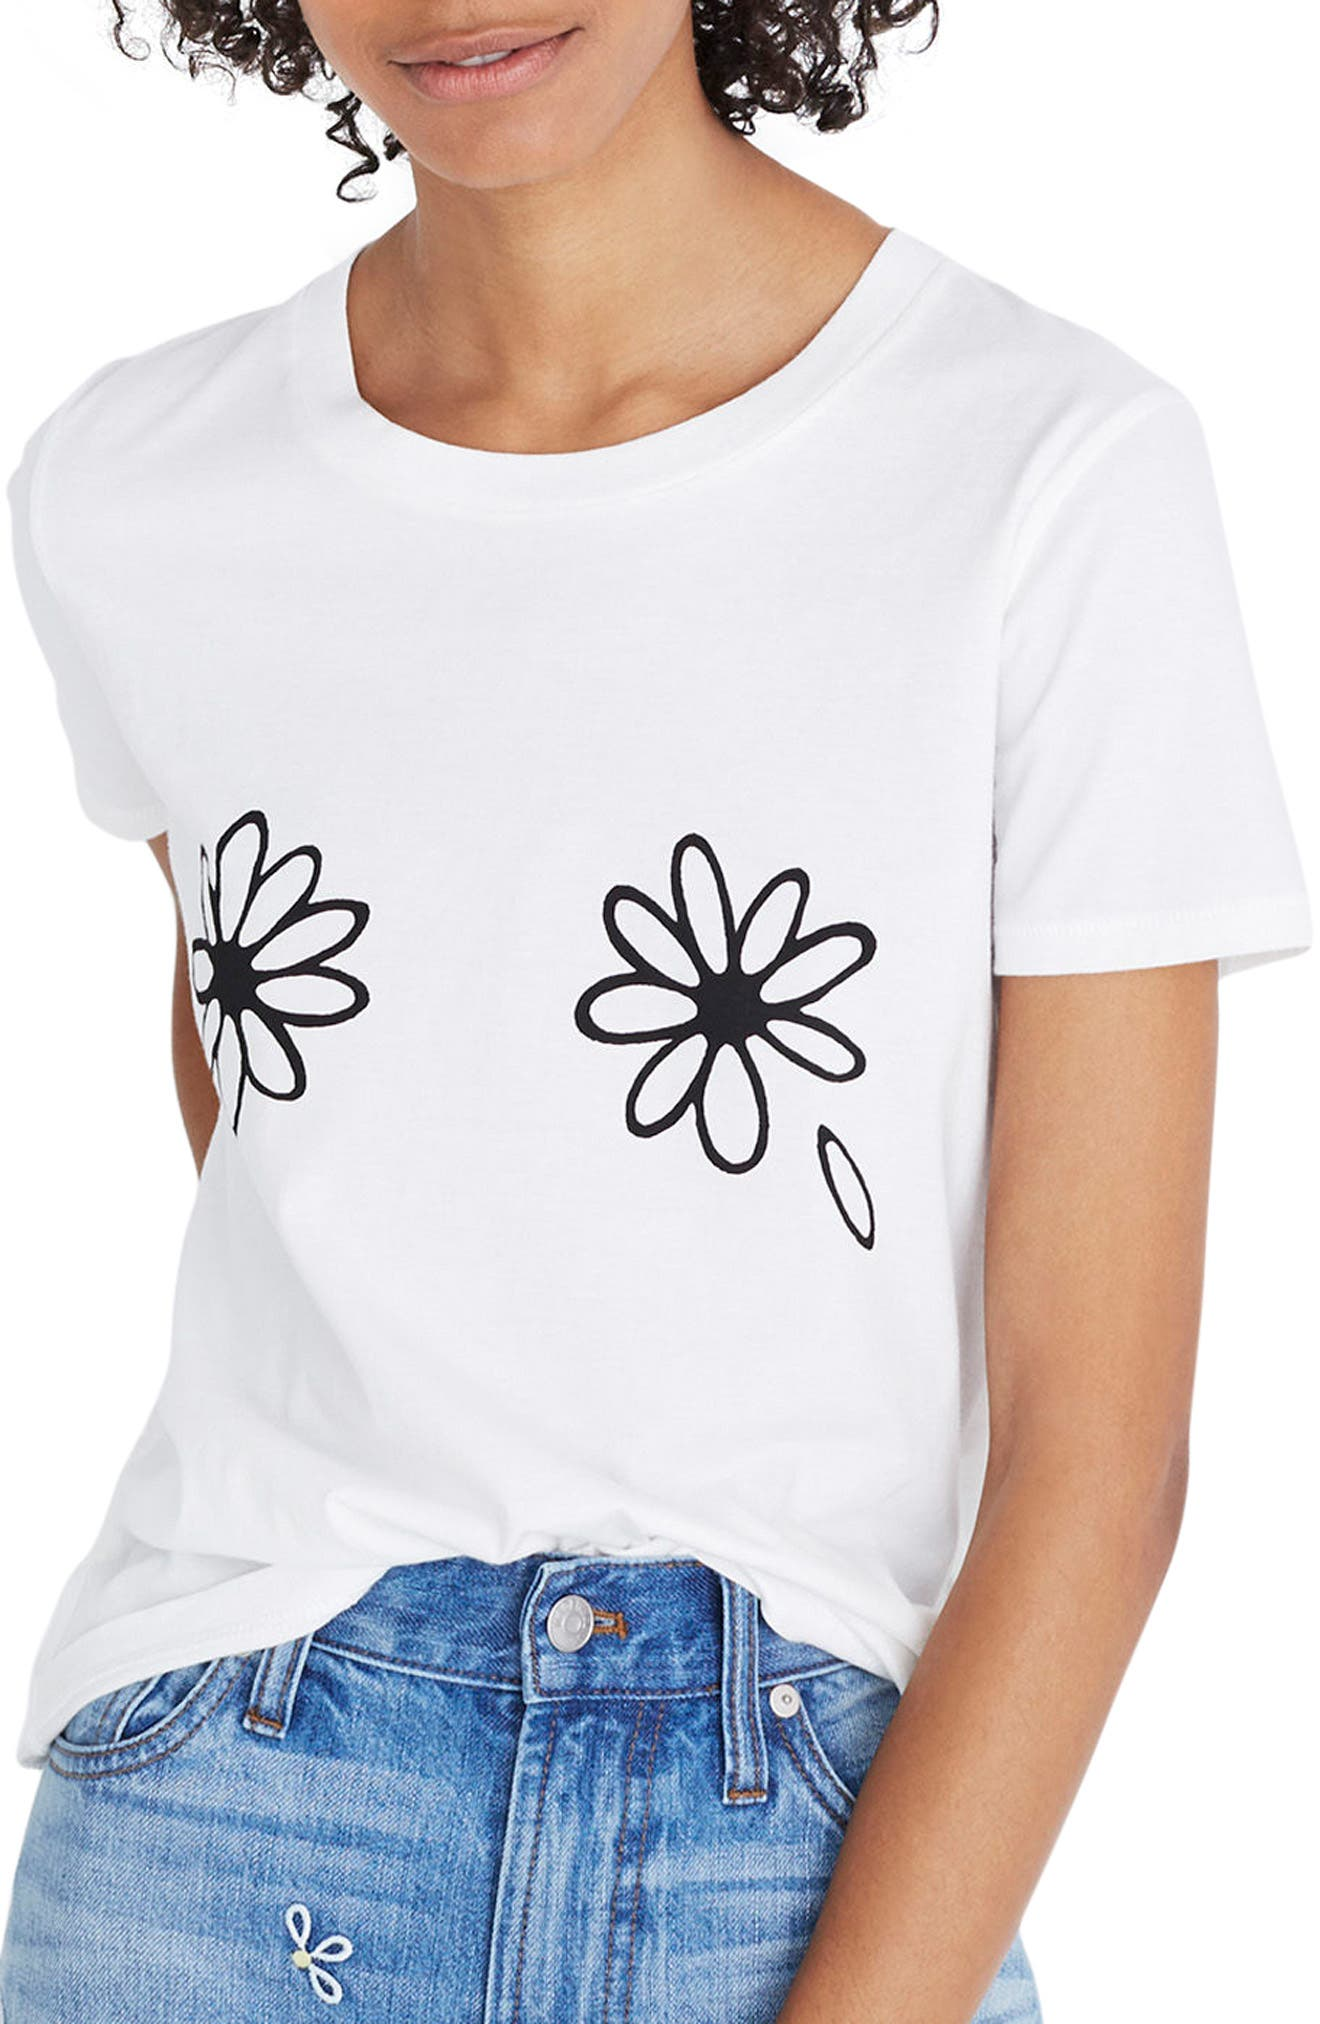 Daisies Graphic Tee,                         Main,                         color, 100